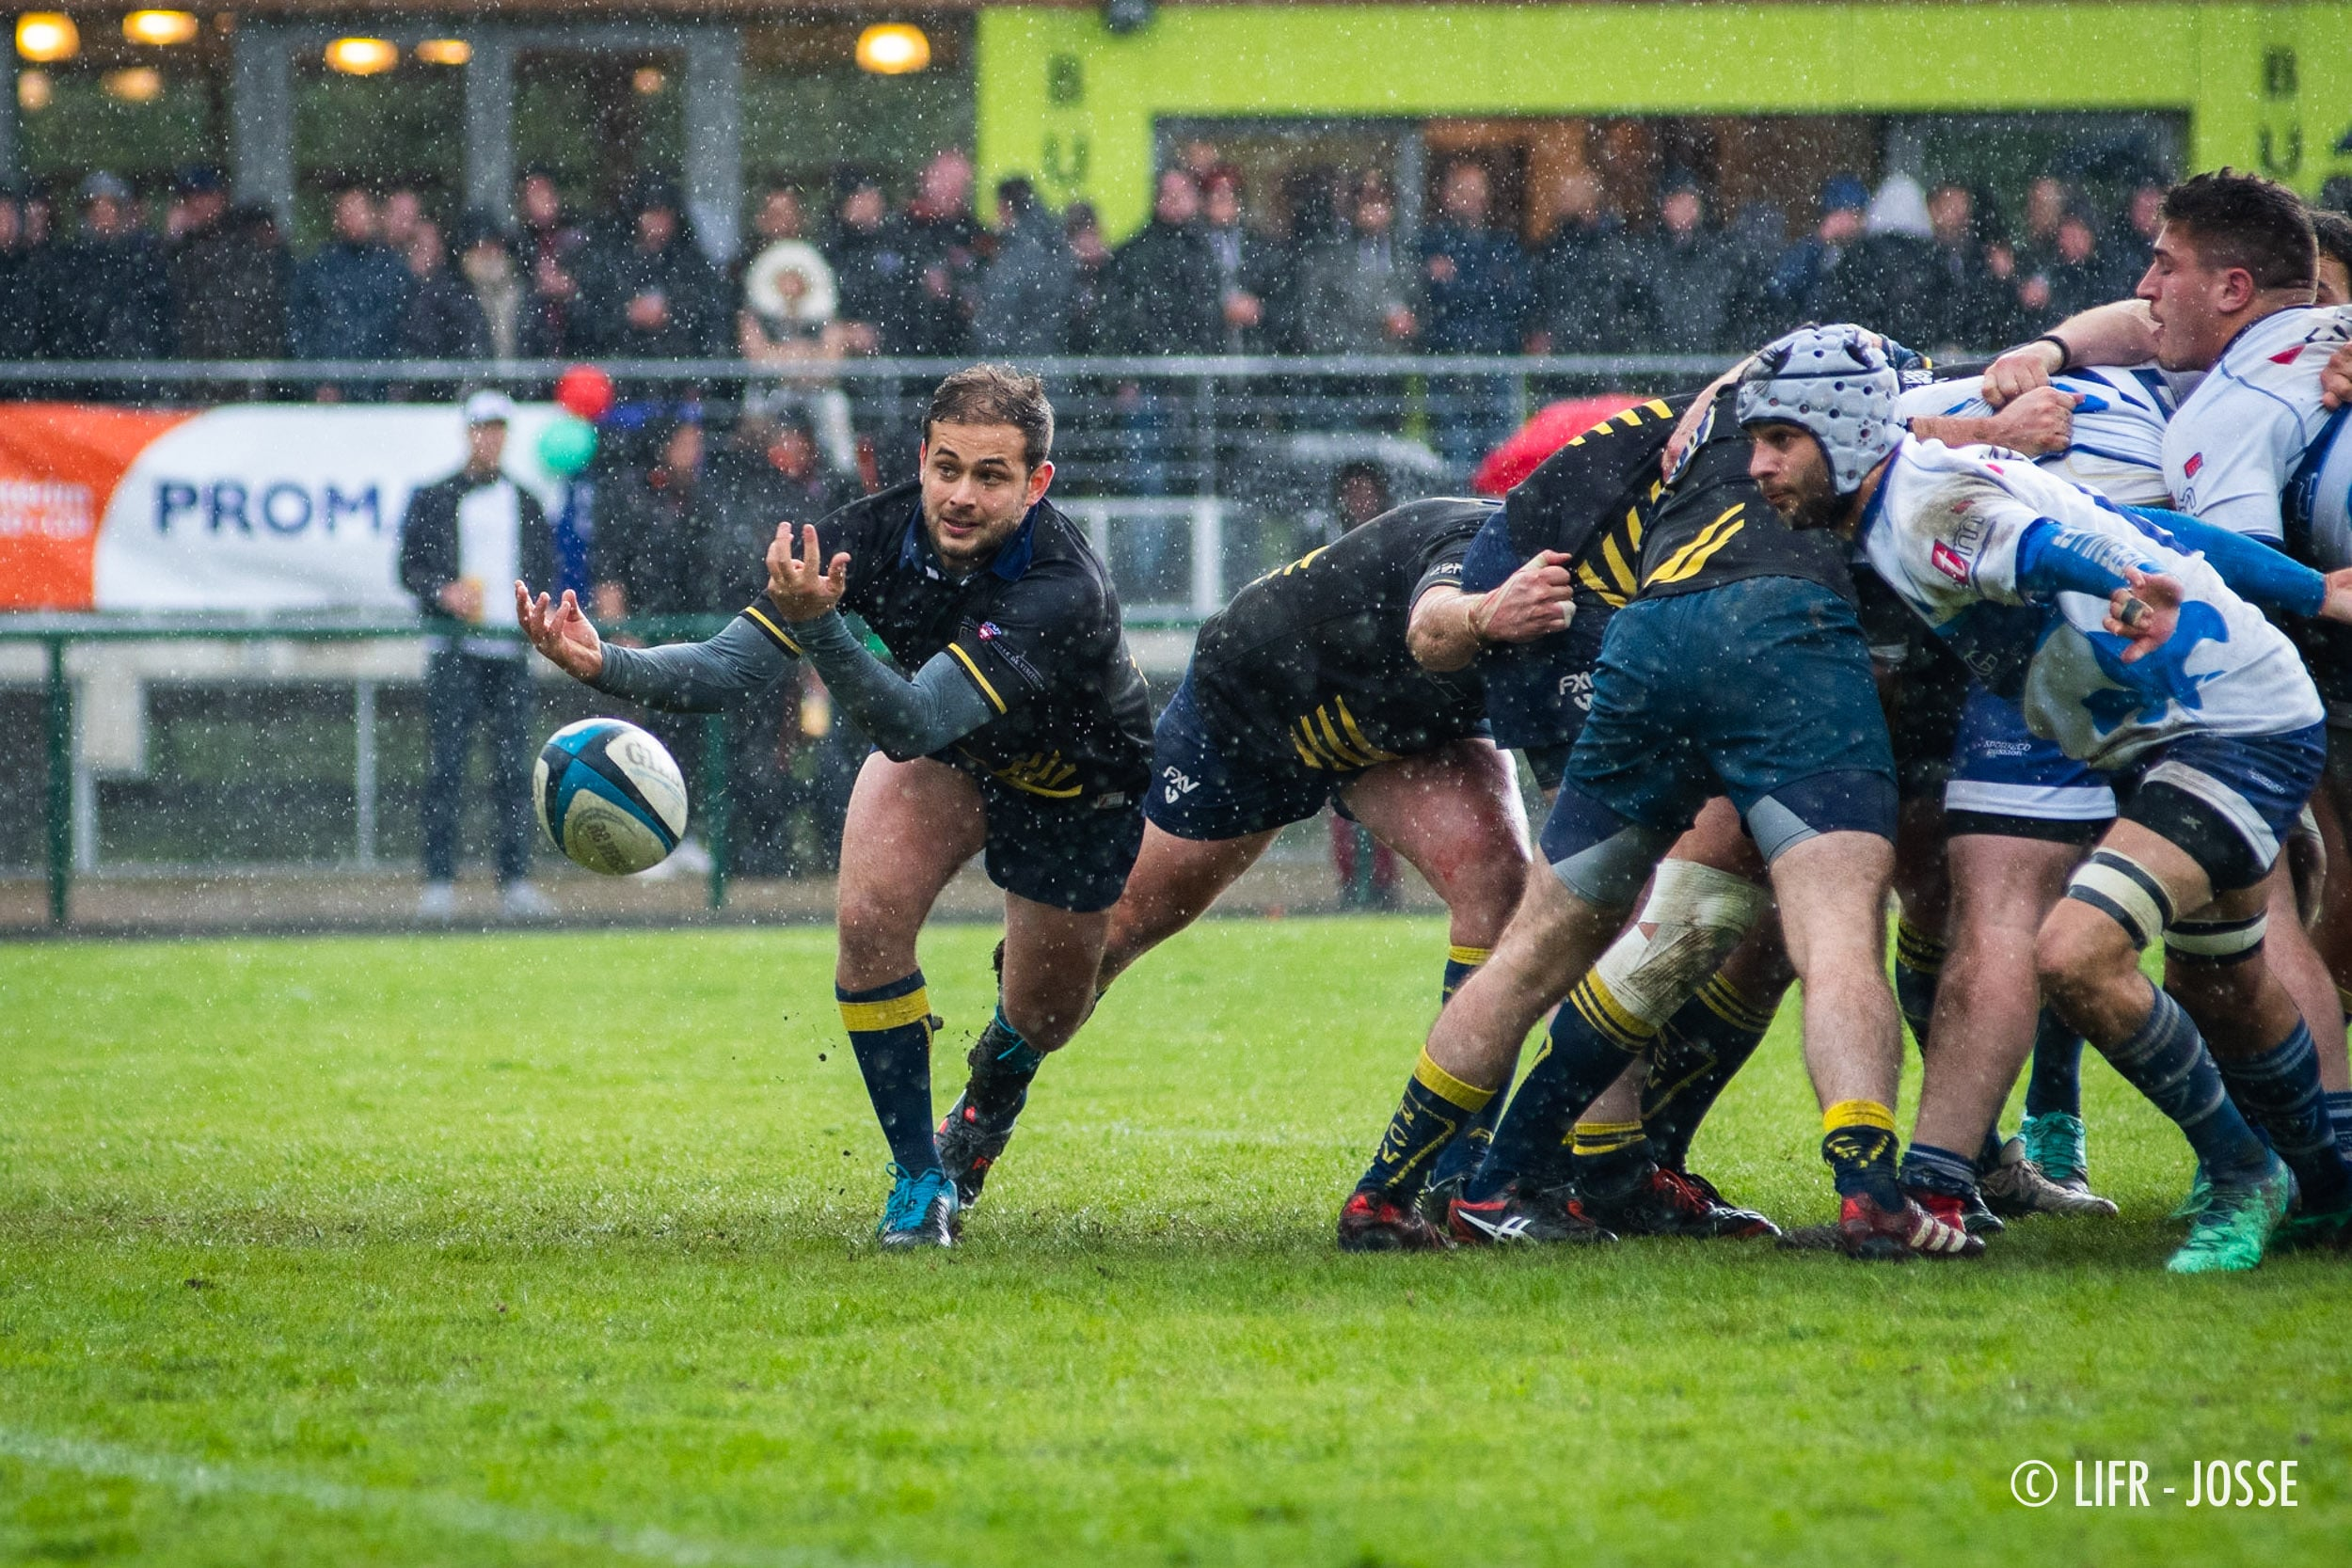 Proman-finales seniors rugby